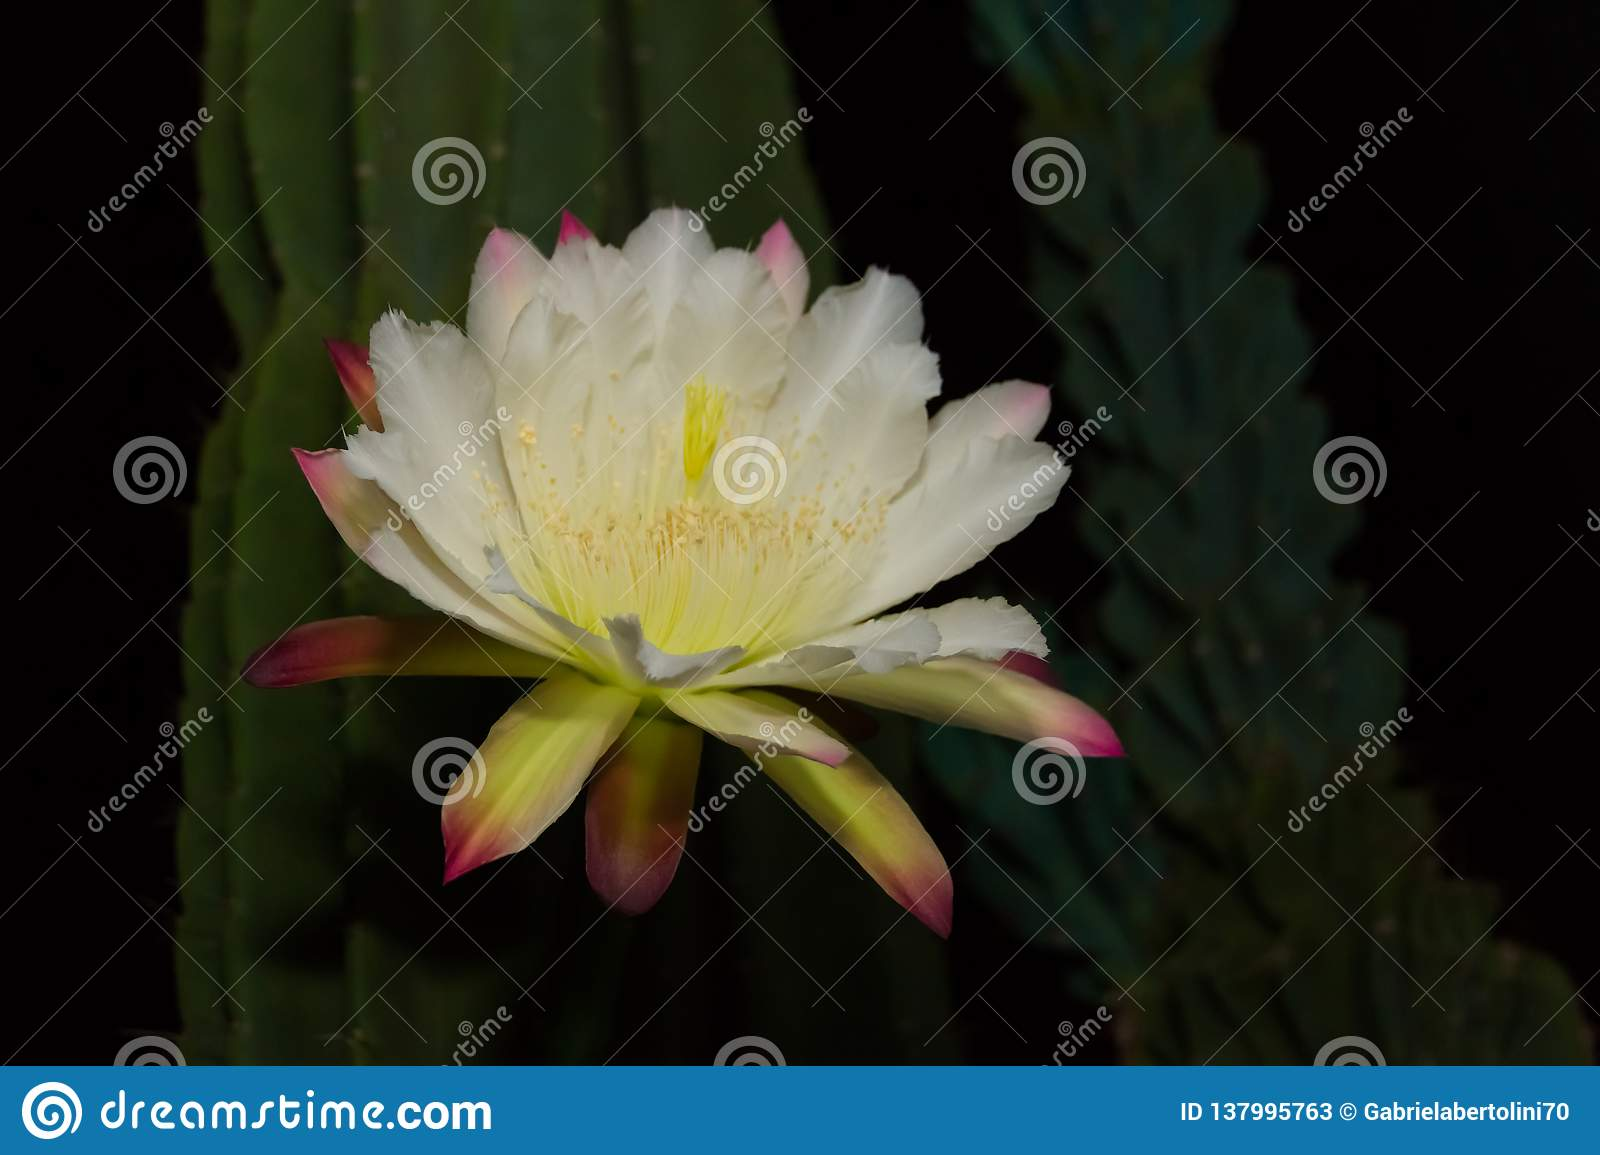 The White Flower Of The Cactus Cereus Blooming At Night Stock Image